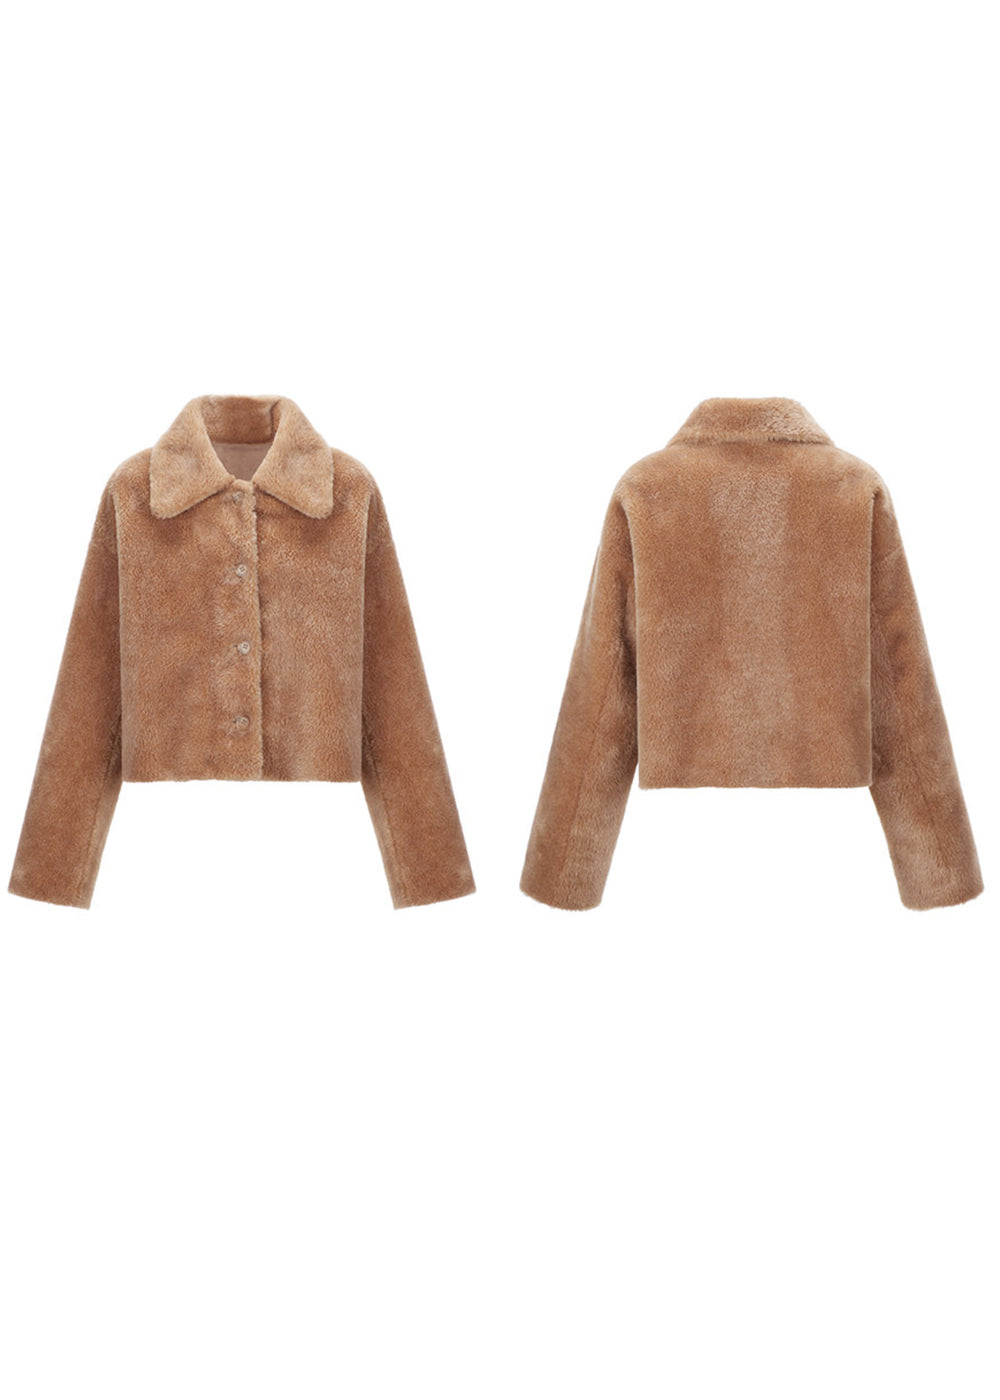 SHEARING REVERSIBLE CROP JACKET BEIGE